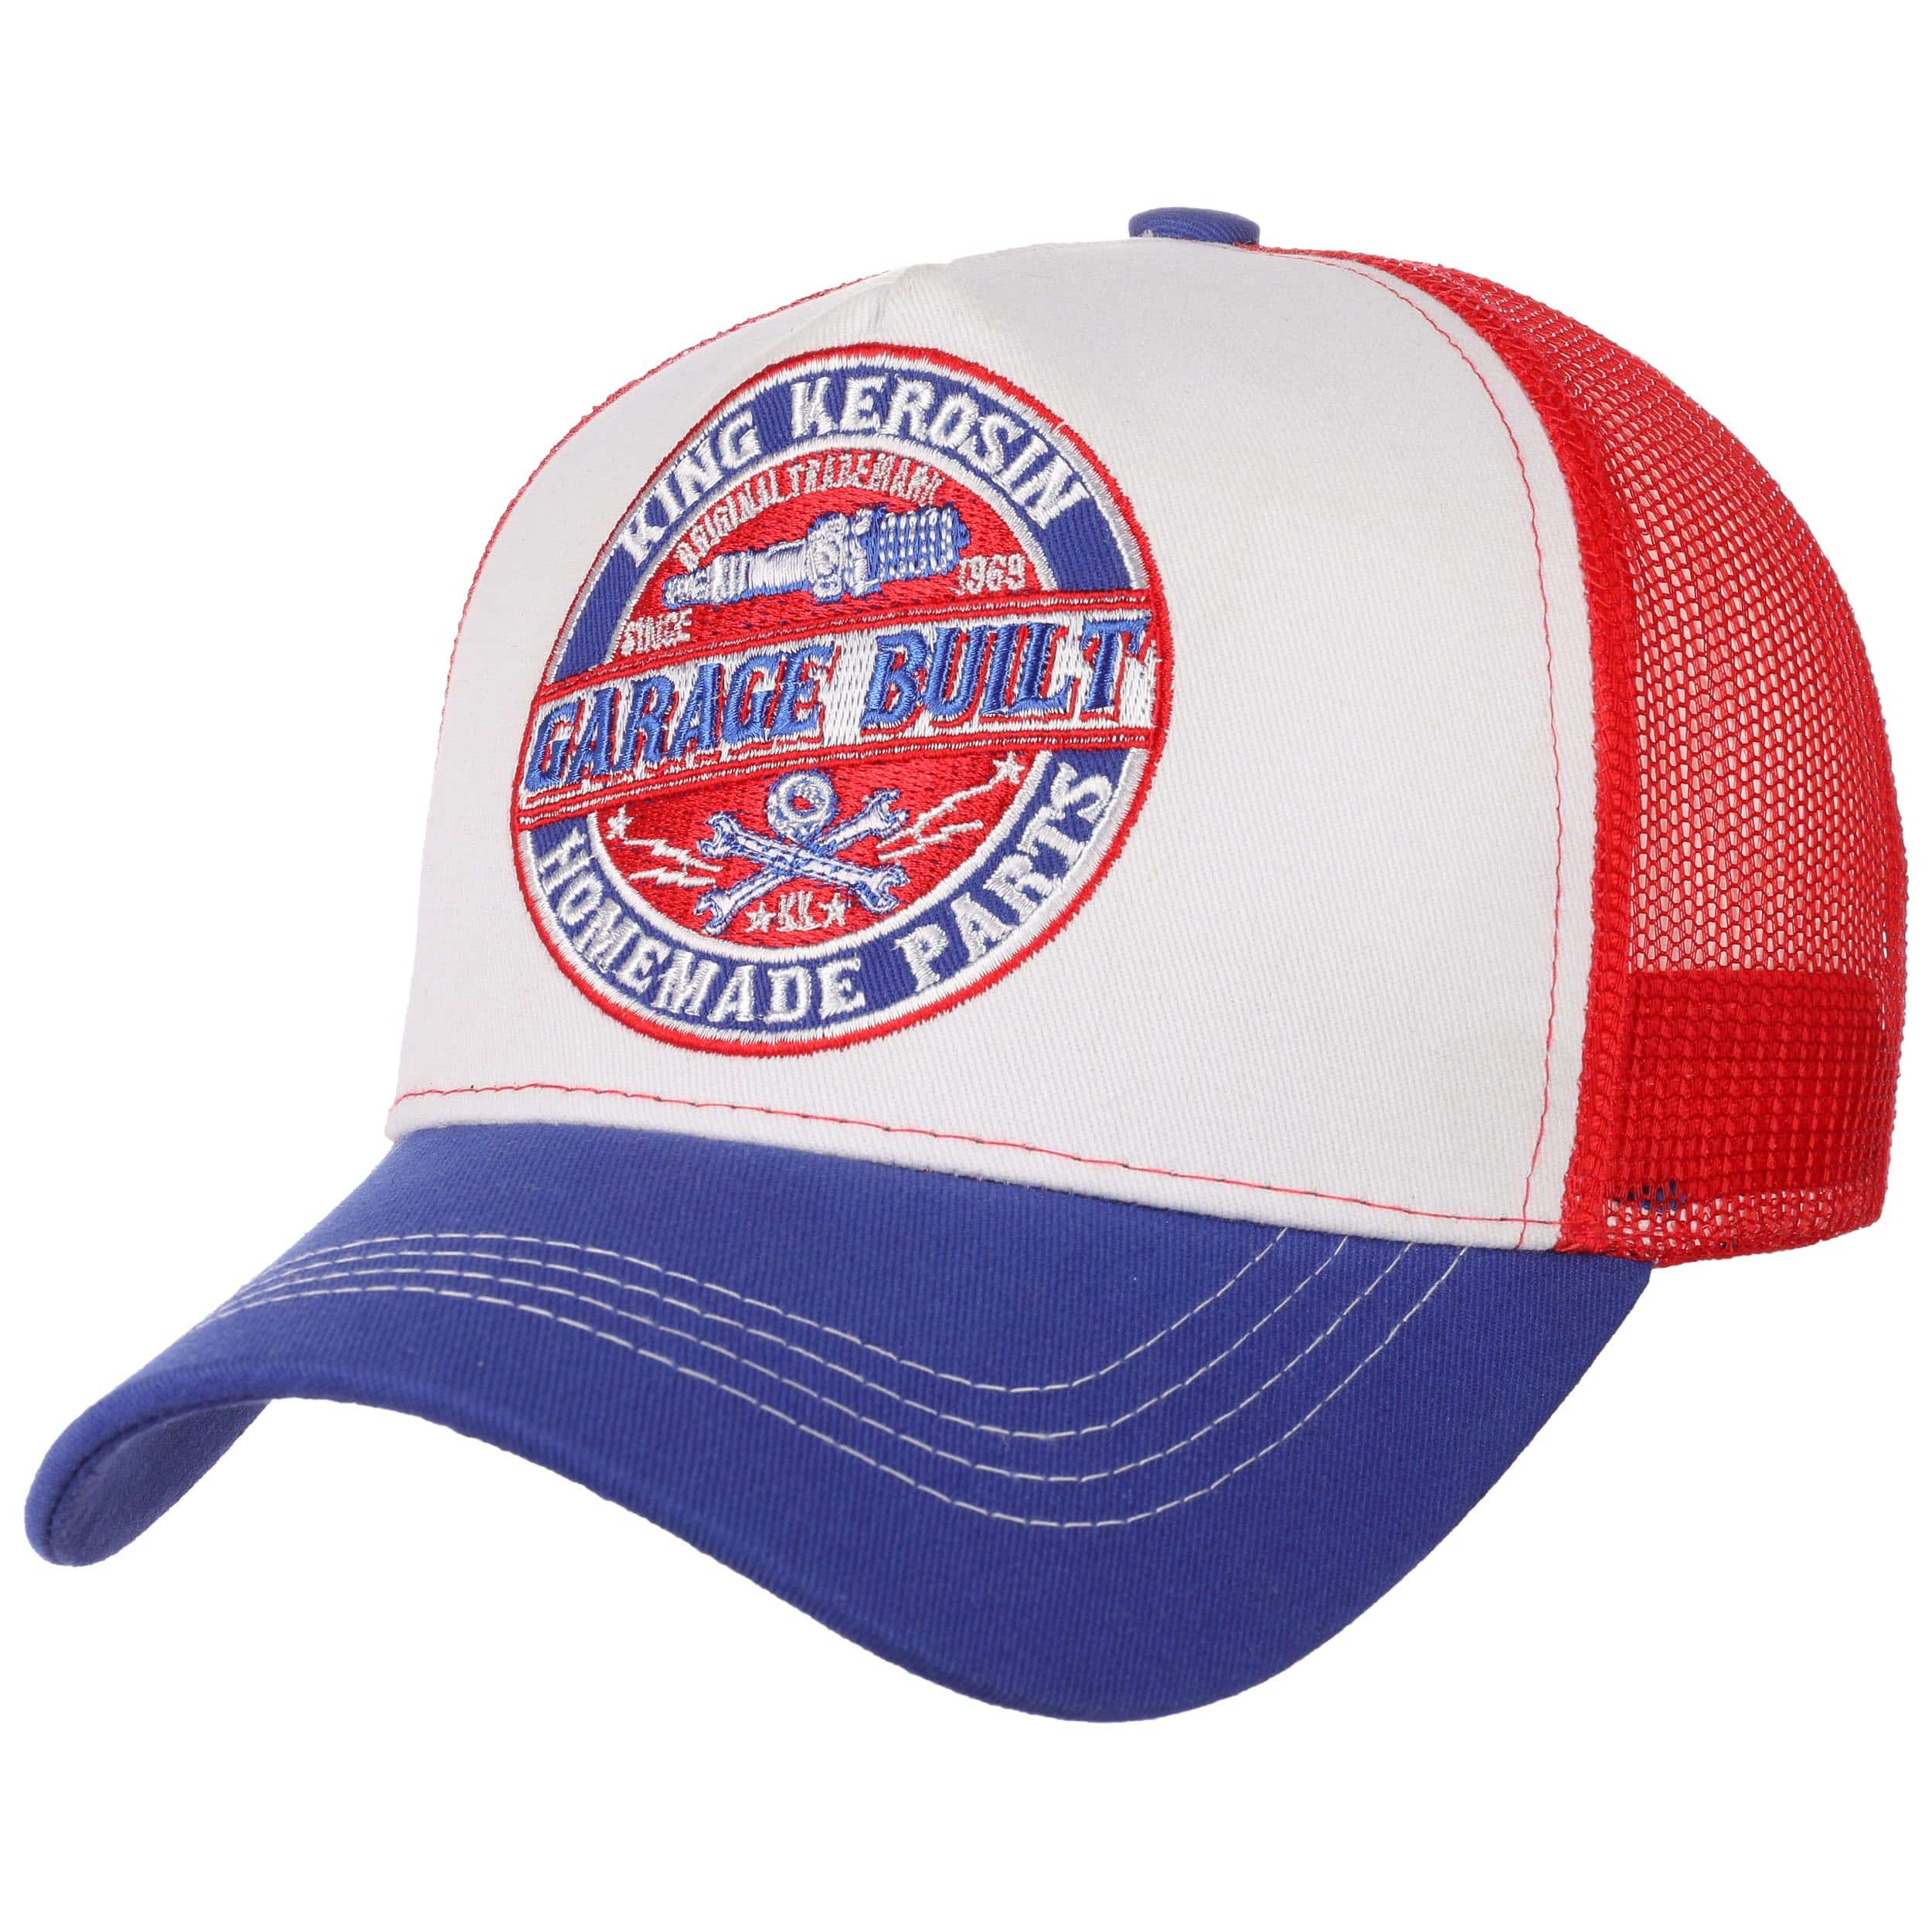 garage built trucker cap by king kerosin 34 95